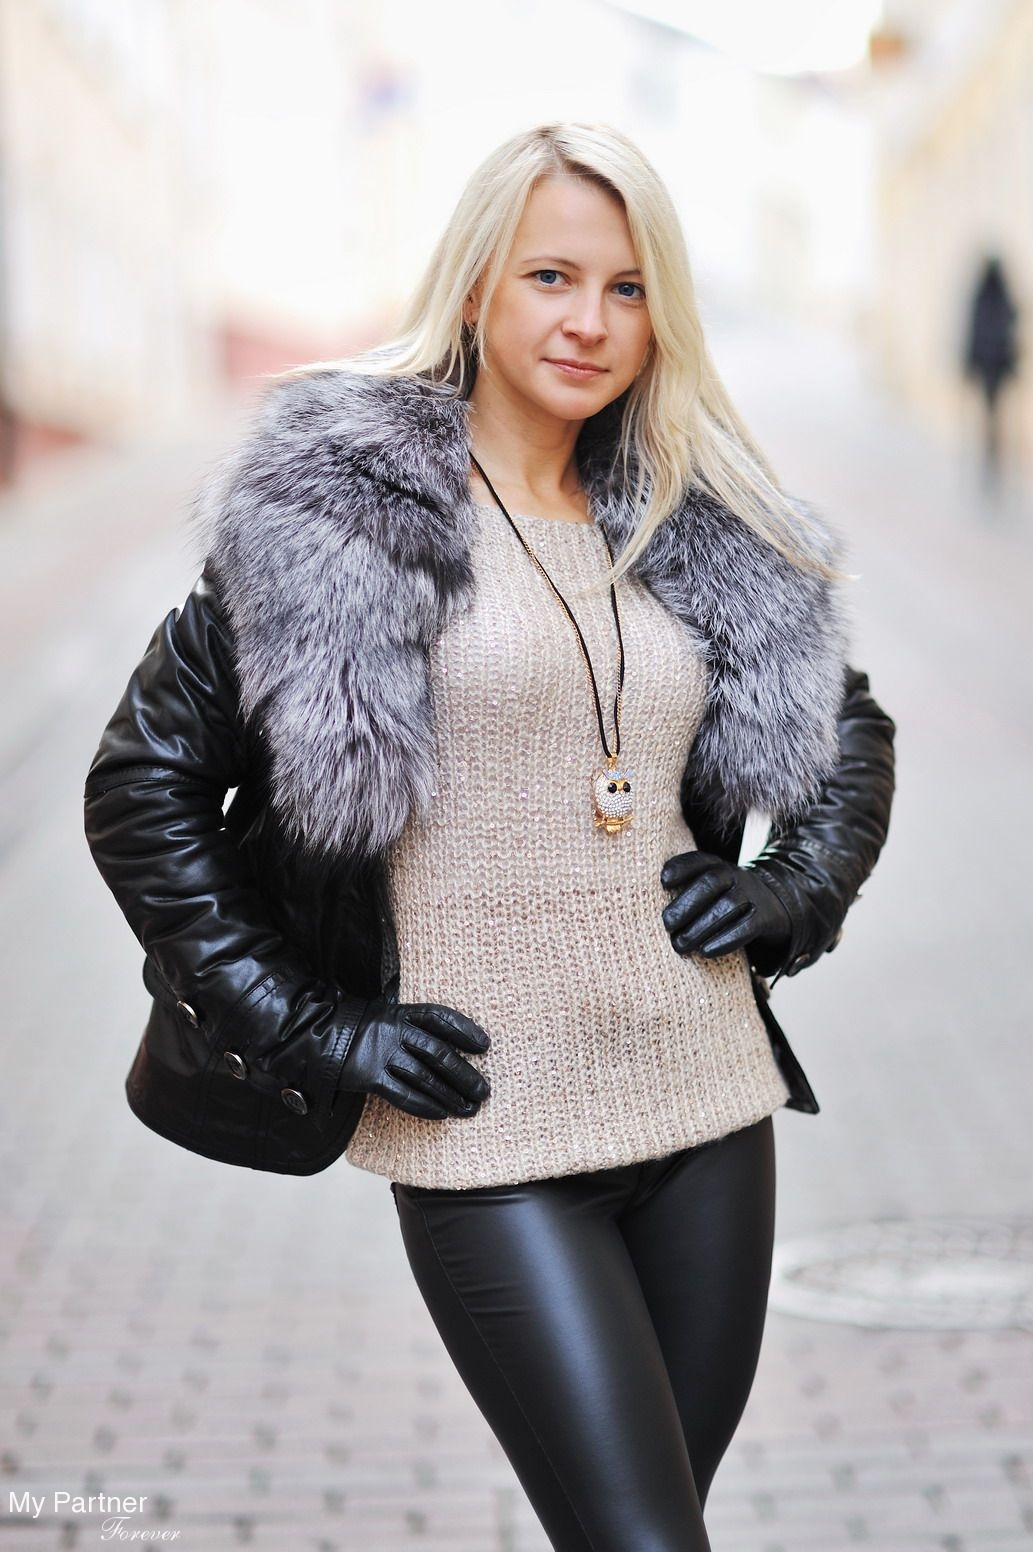 Gorgeous Bride from Belarus - Tatiyana from Minsk, Belarus